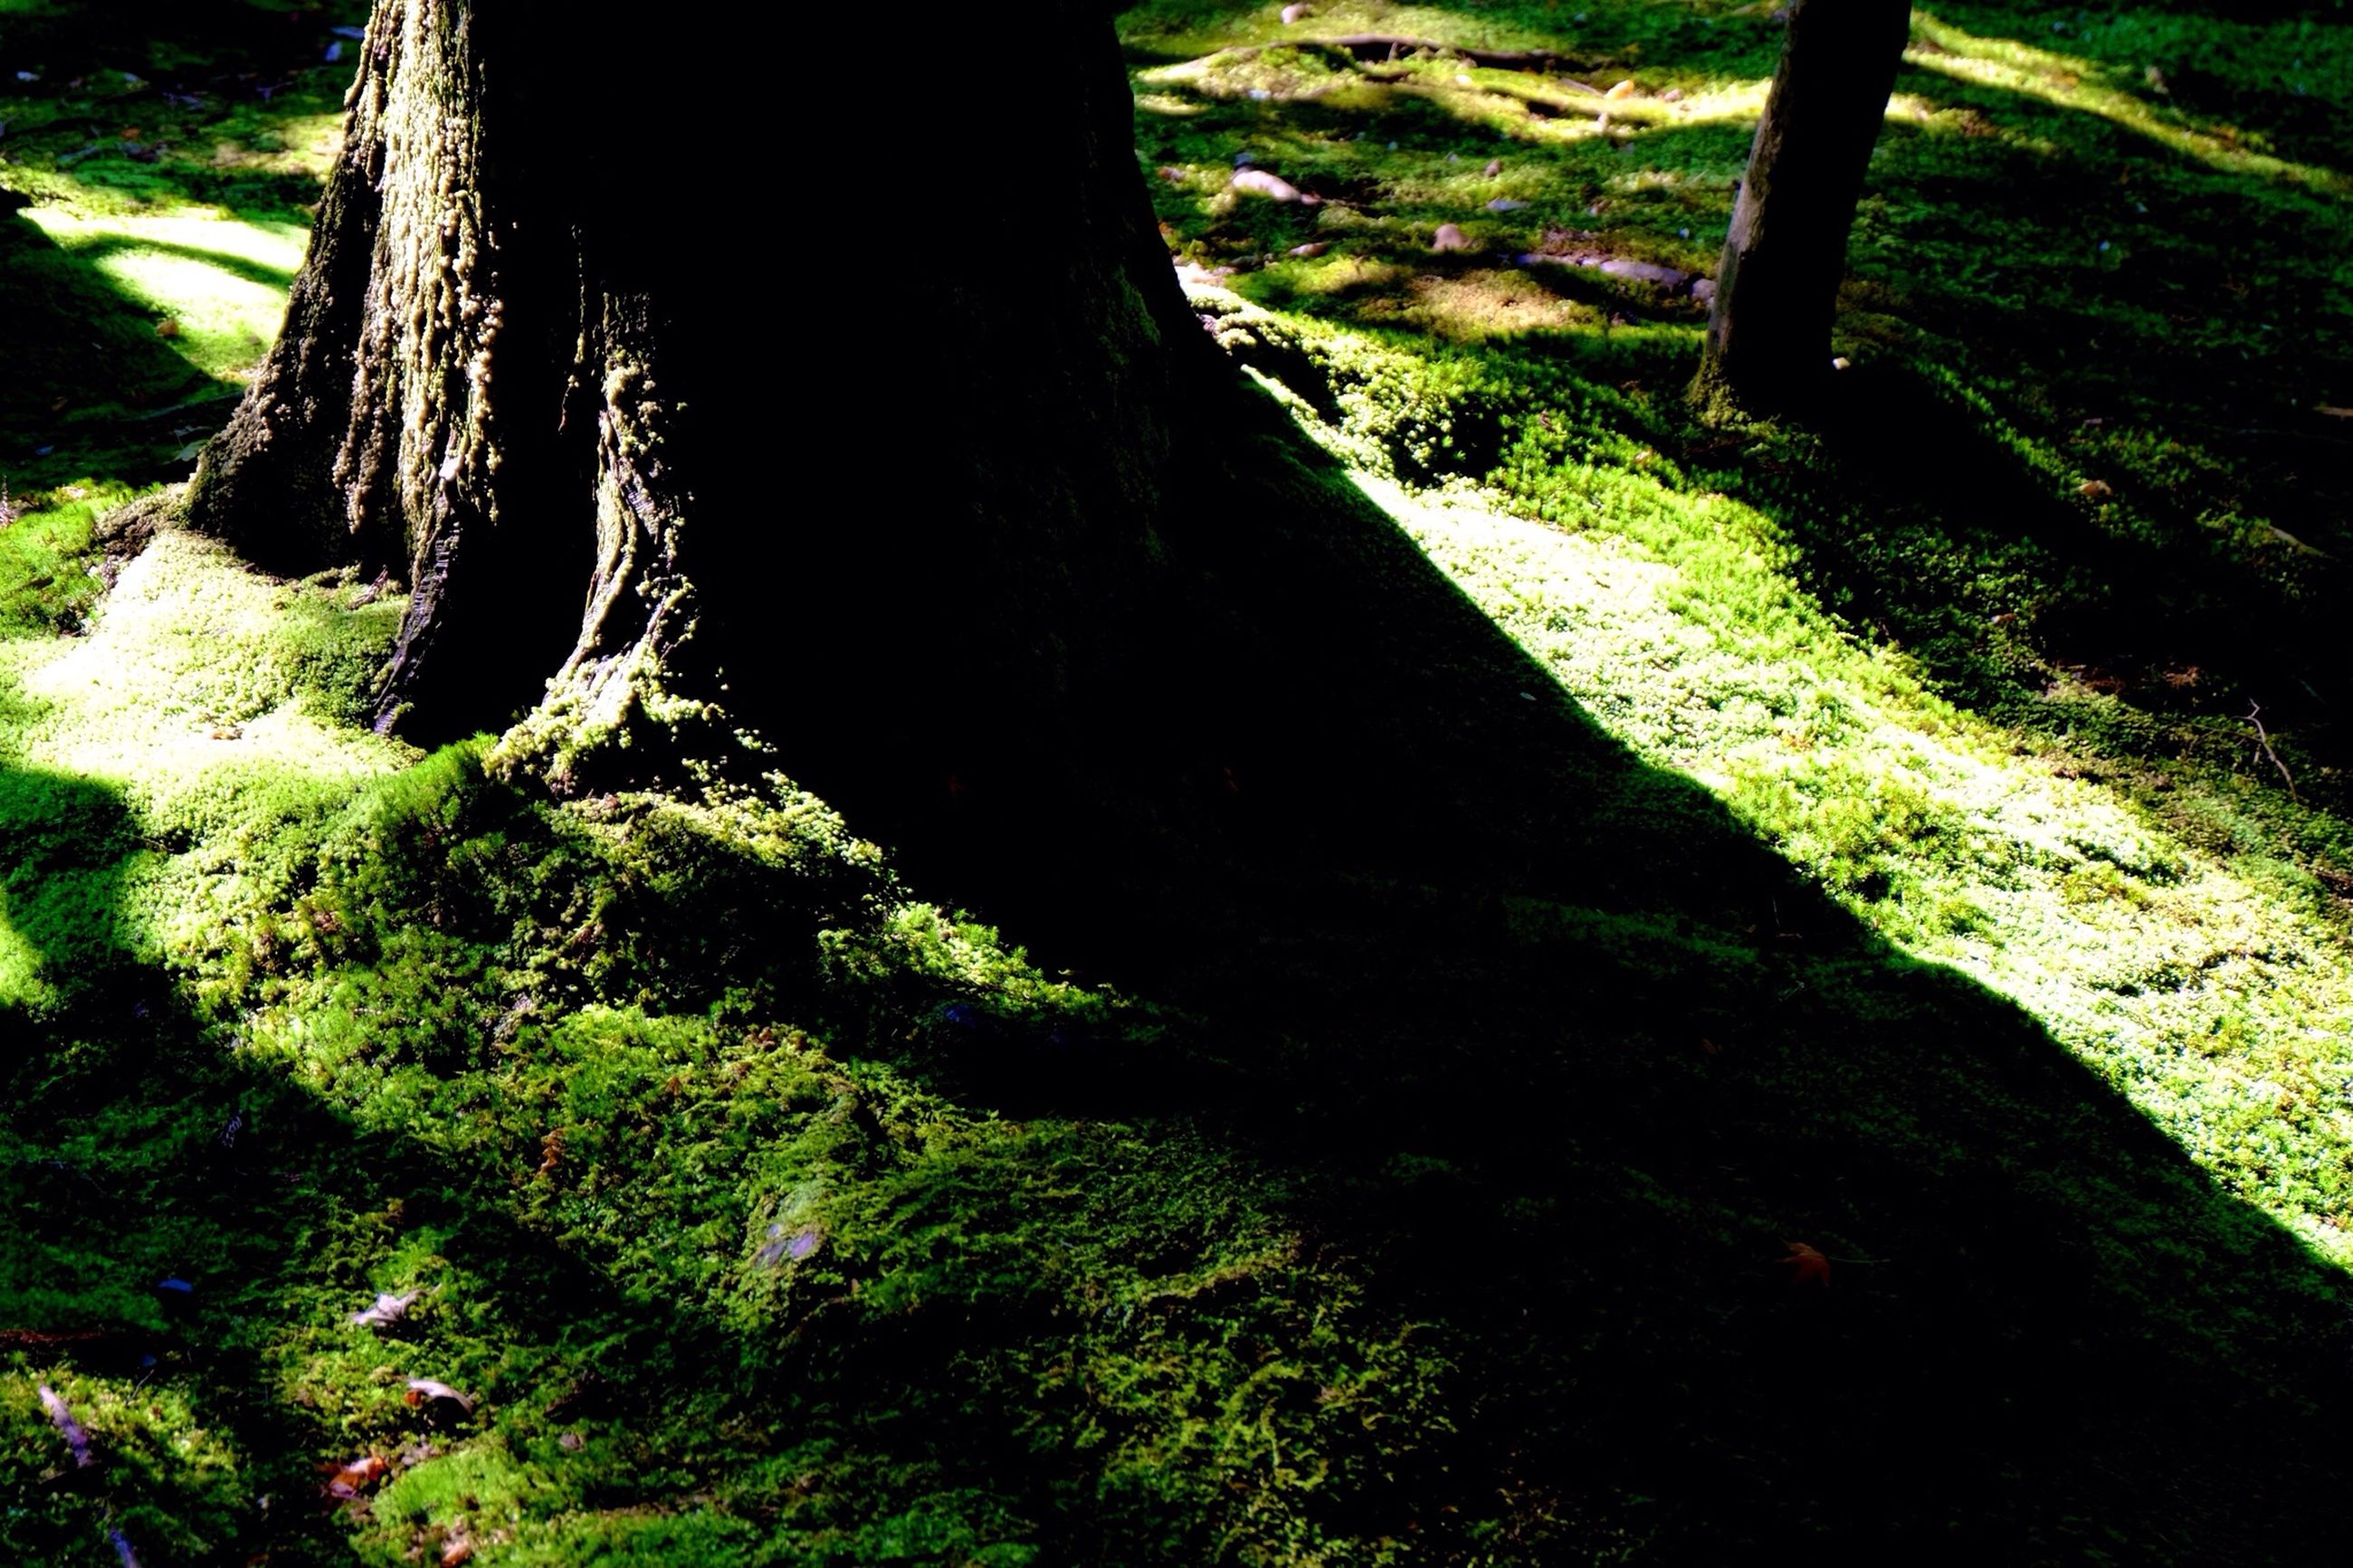 tree trunk, tree, grass, forest, tranquility, nature, growth, green color, tranquil scene, sunlight, shadow, field, moss, landscape, beauty in nature, woodland, scenics, outdoors, day, non-urban scene